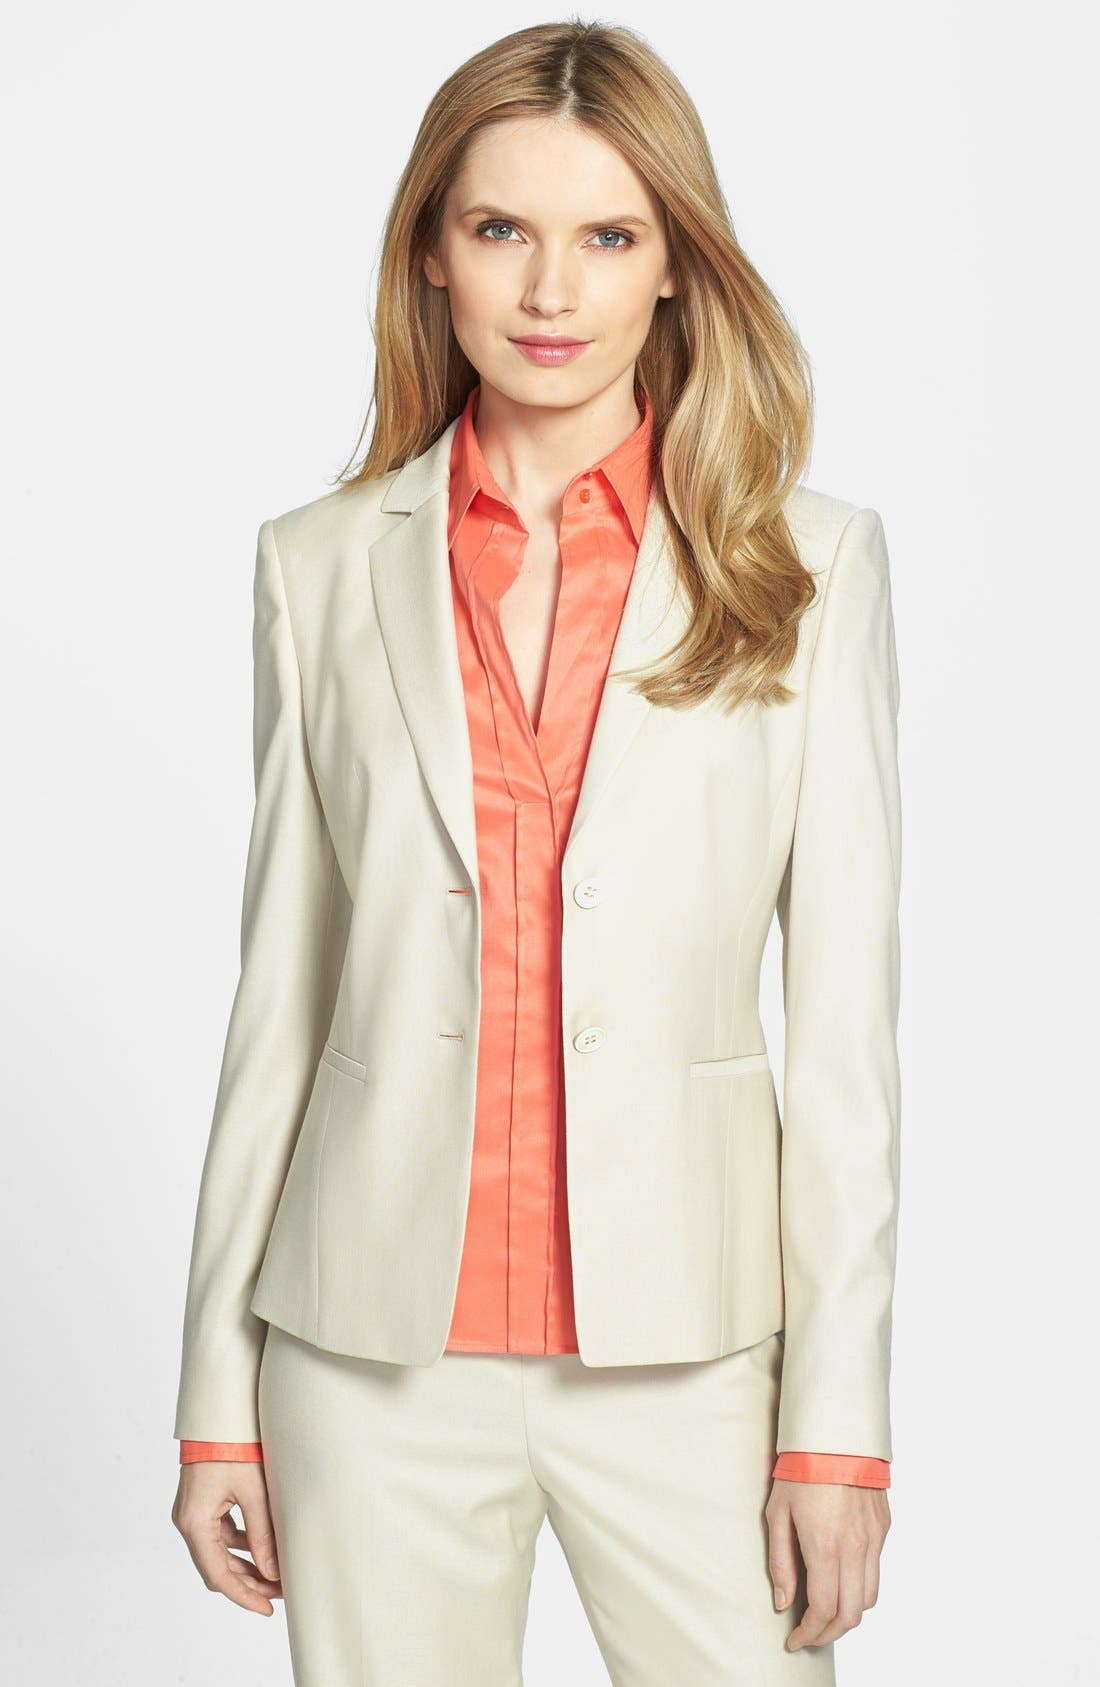 Alternate Image 1 Selected - BOSS 'Jakely' Suiting Jacket